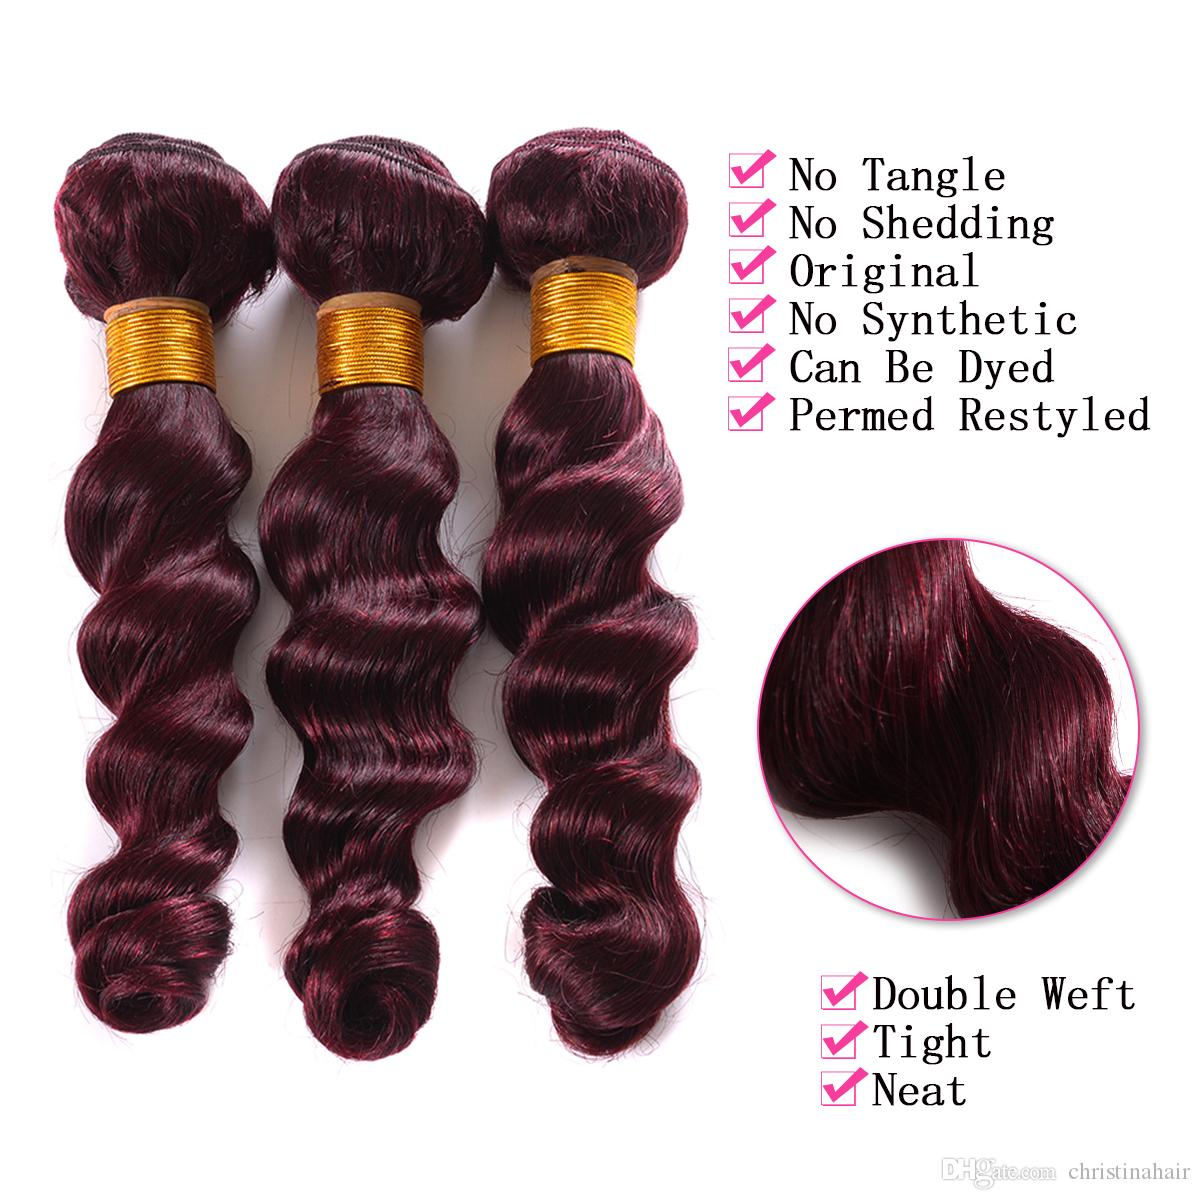 Burgundy 7A Brazilian Loose Wave Virgin Hair 3 Bundles With 4x4 Lace Closure Pure #99J Wine Red Human Hair Weaves With Lace Closure